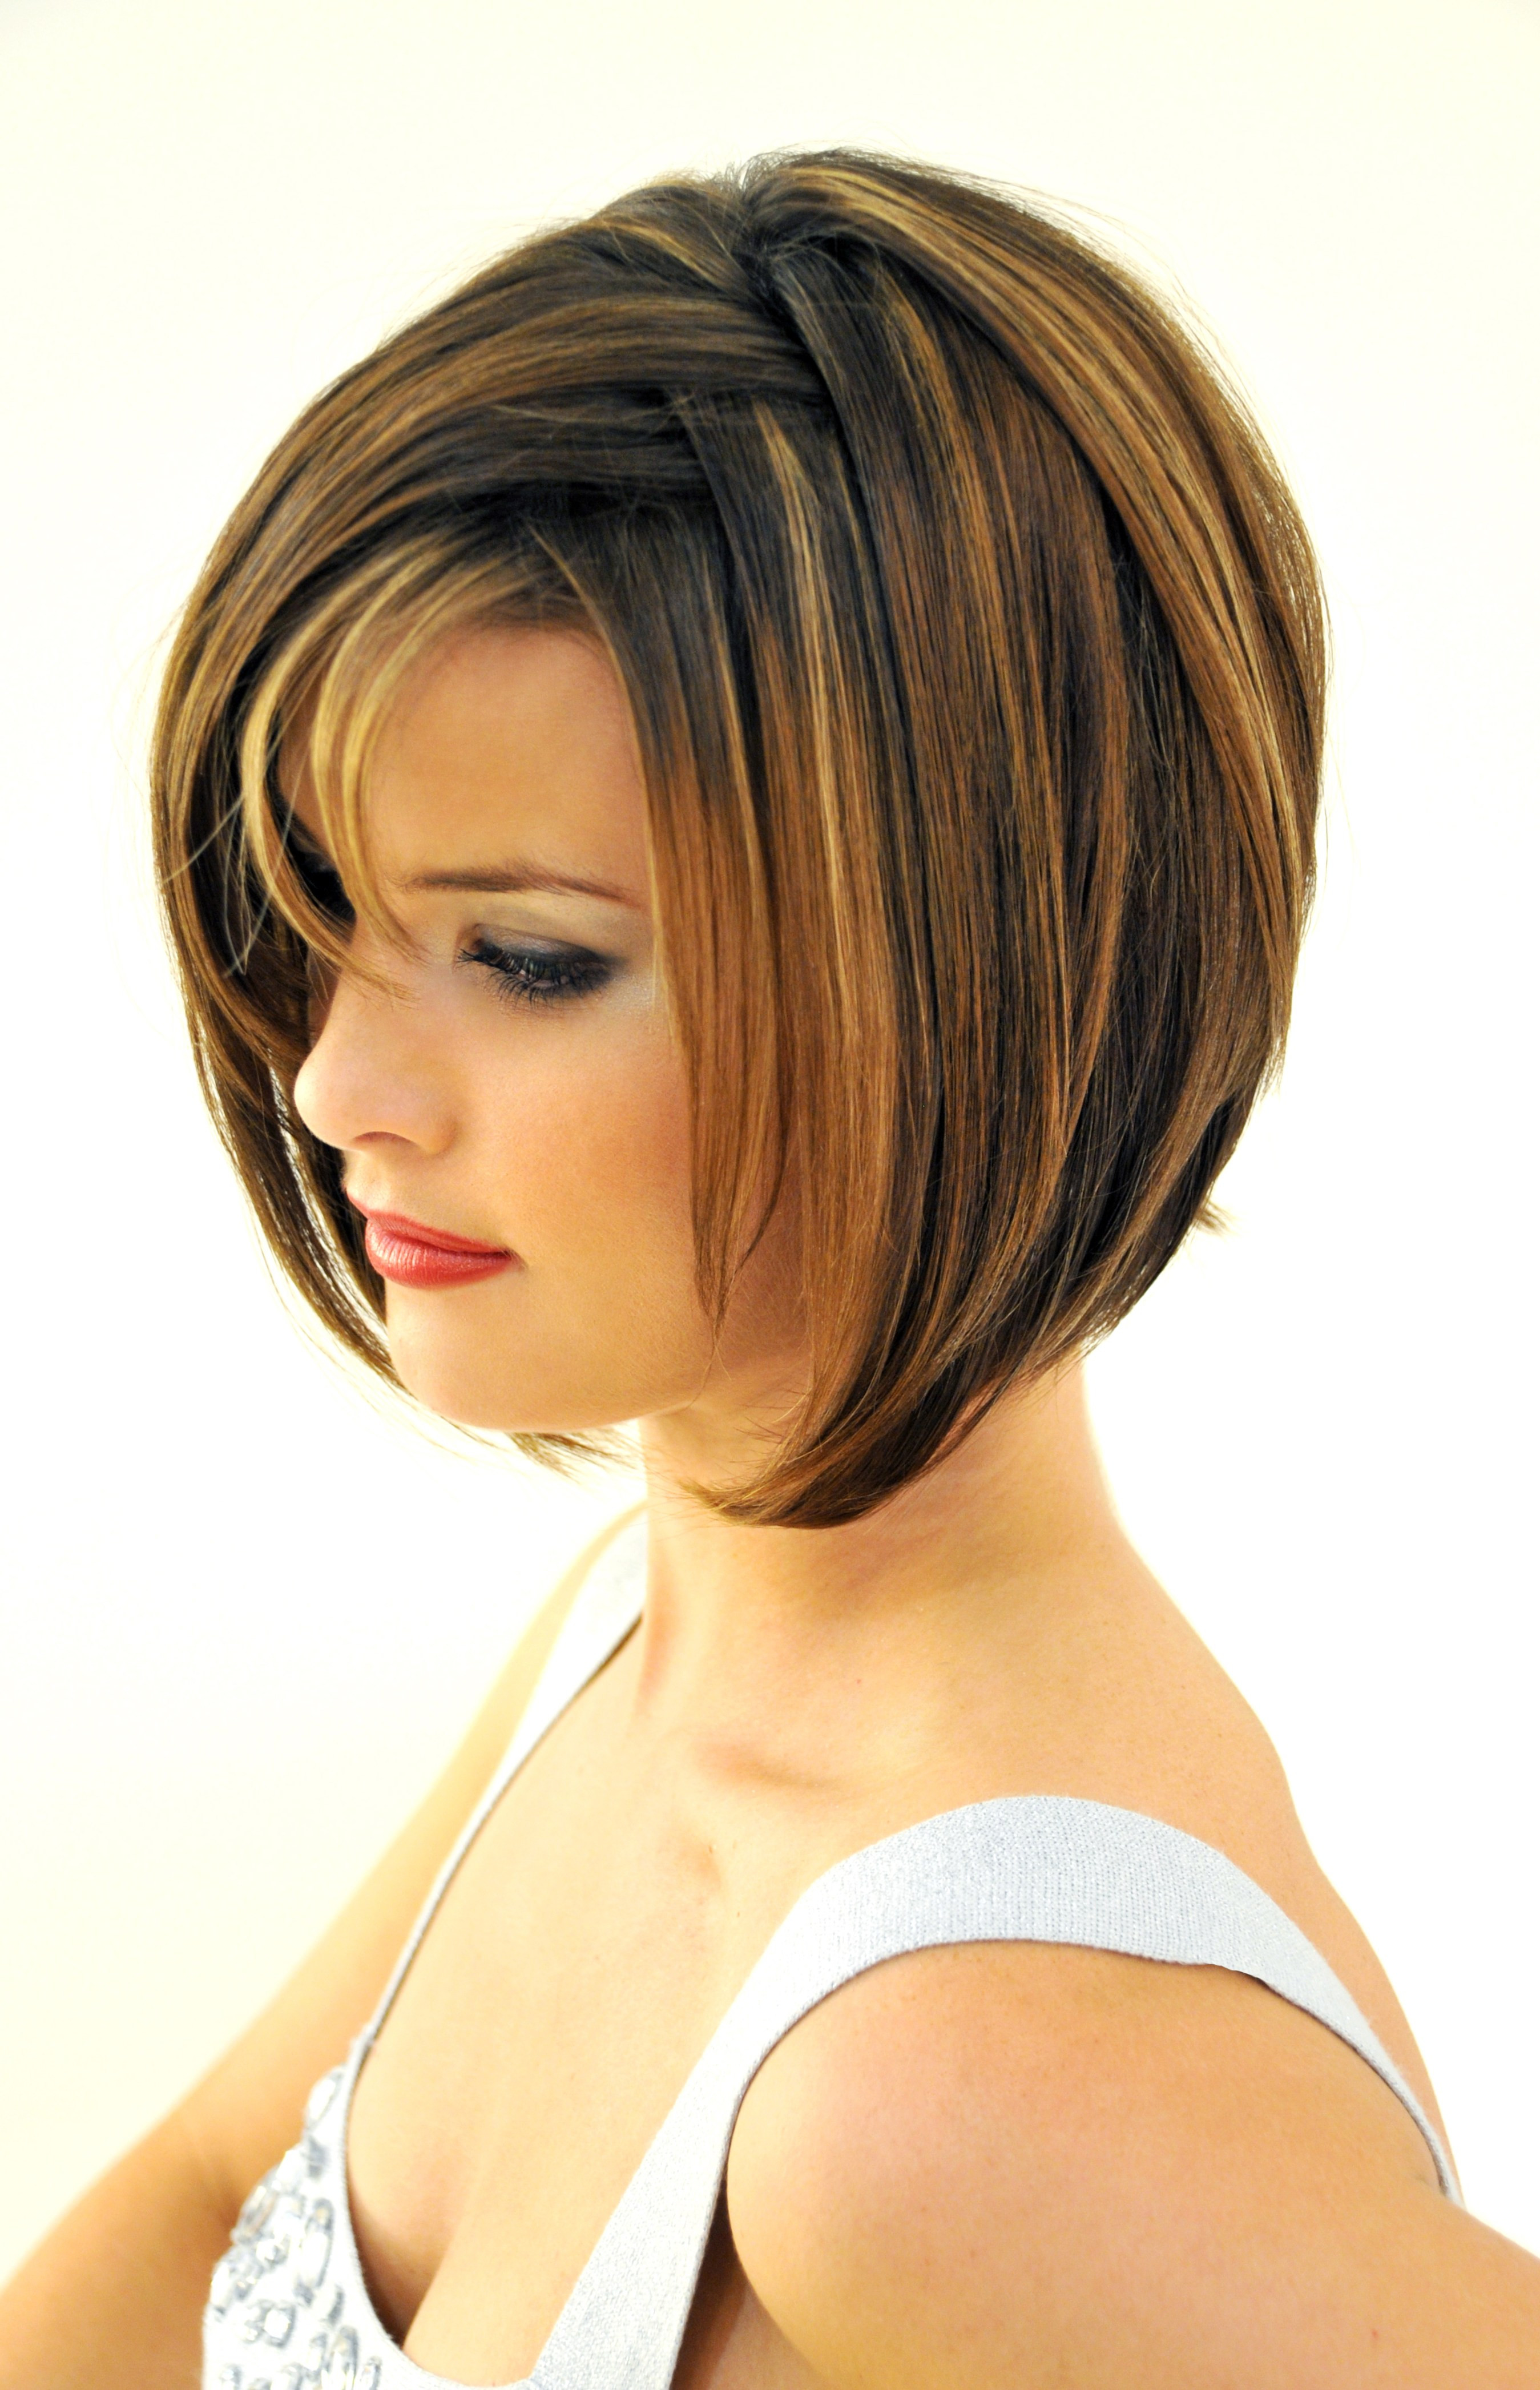 Best ideas about Hairstyles For Bob Cuts . Save or Pin Short Bob Hairstyles with Bangs 4 Perfect Ideas for You Now.